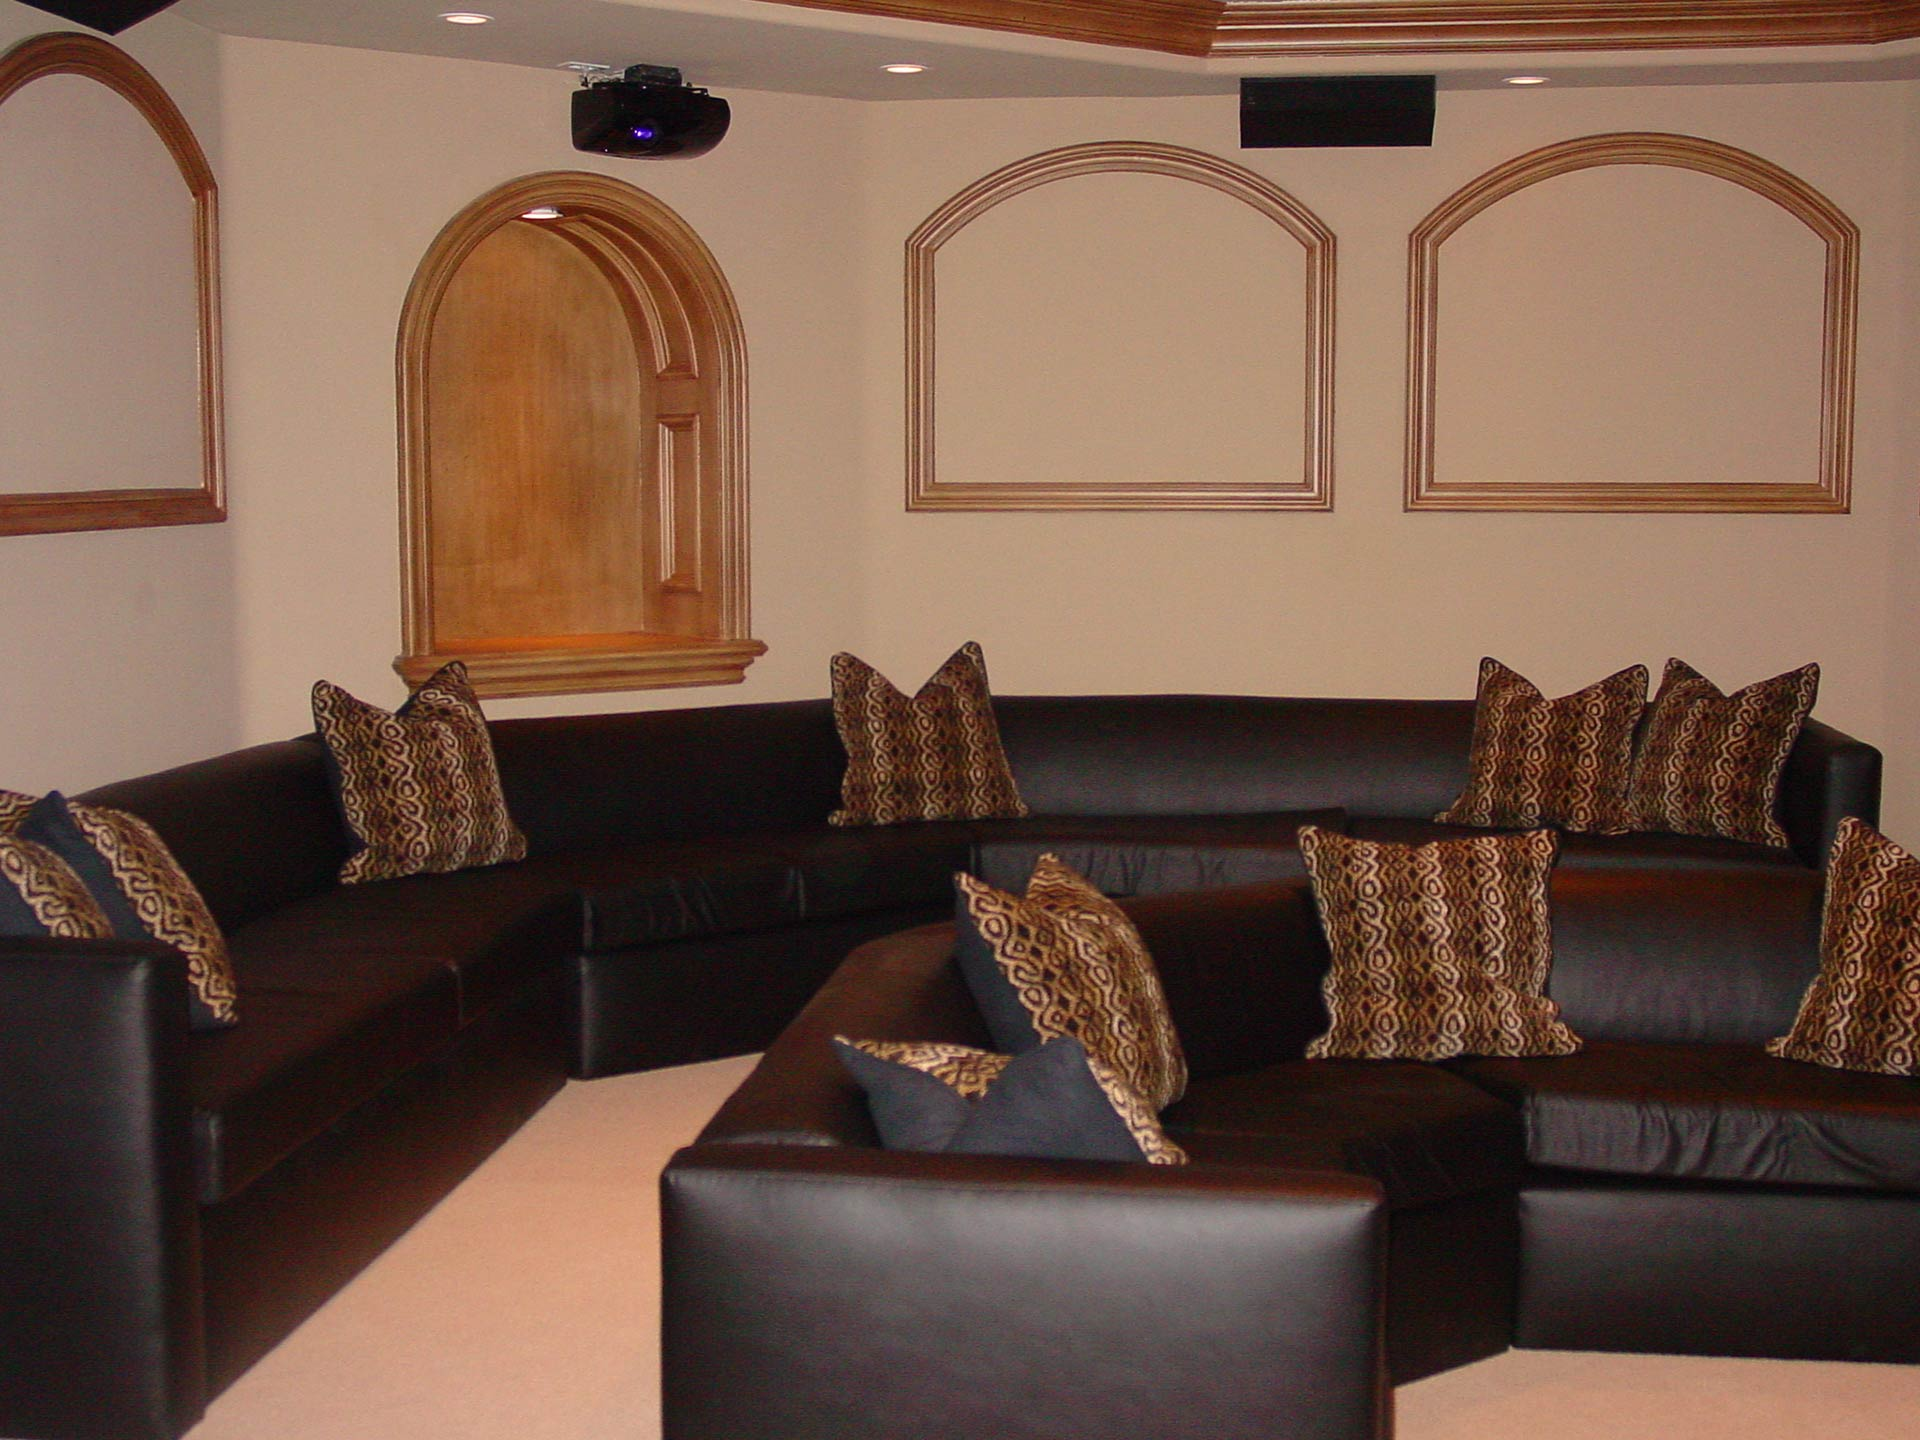 Visual Homes smart homes, home theater, home technology? trust kiwi audio visual